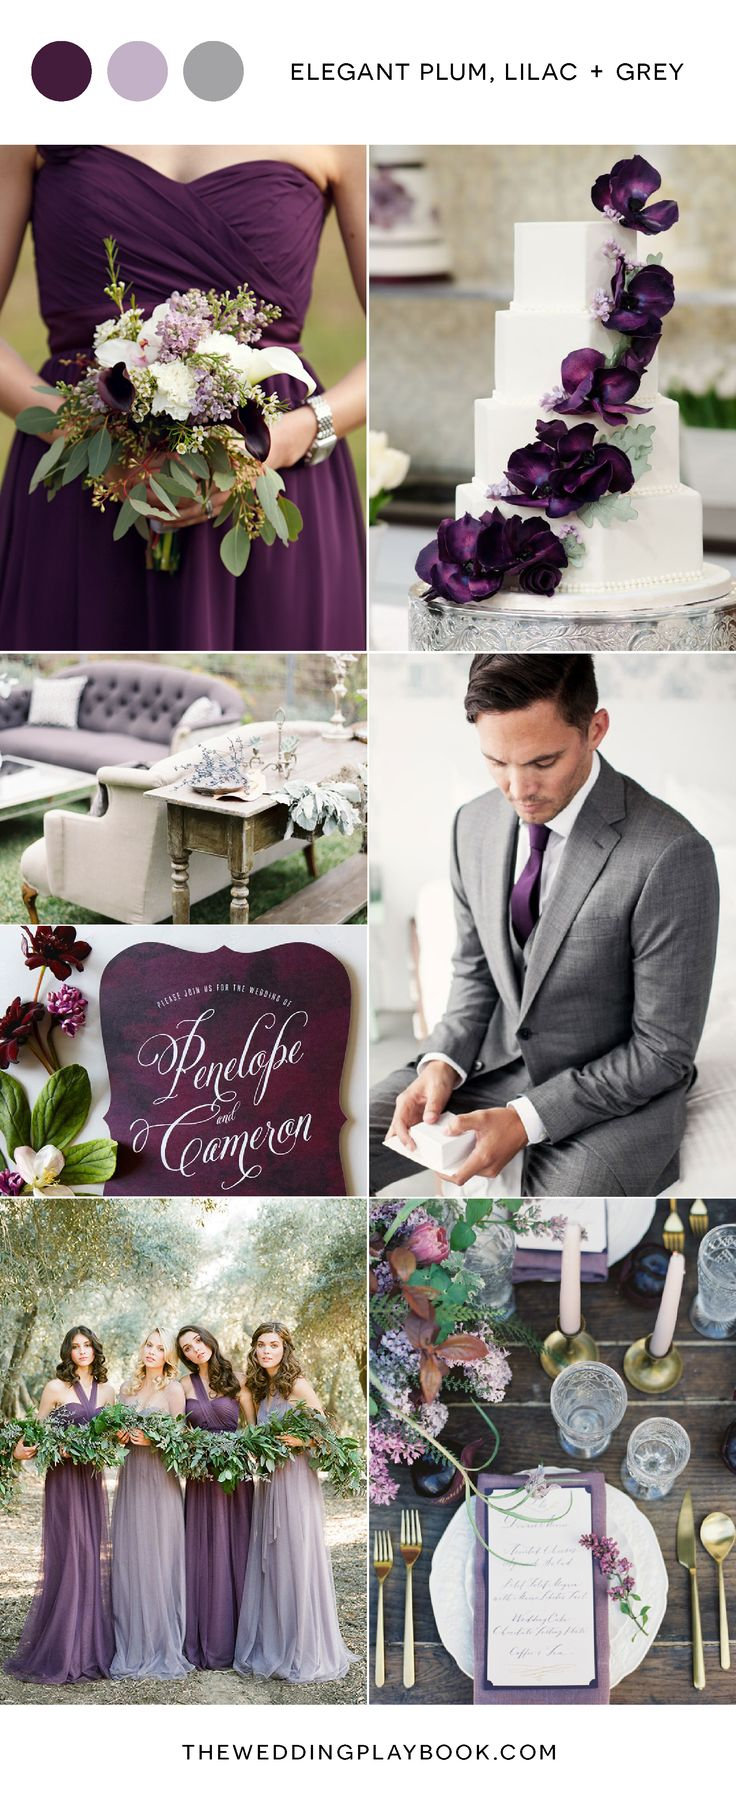 25 best ideas about plum wedding on pinterest purple for Wedding color scheme ideas